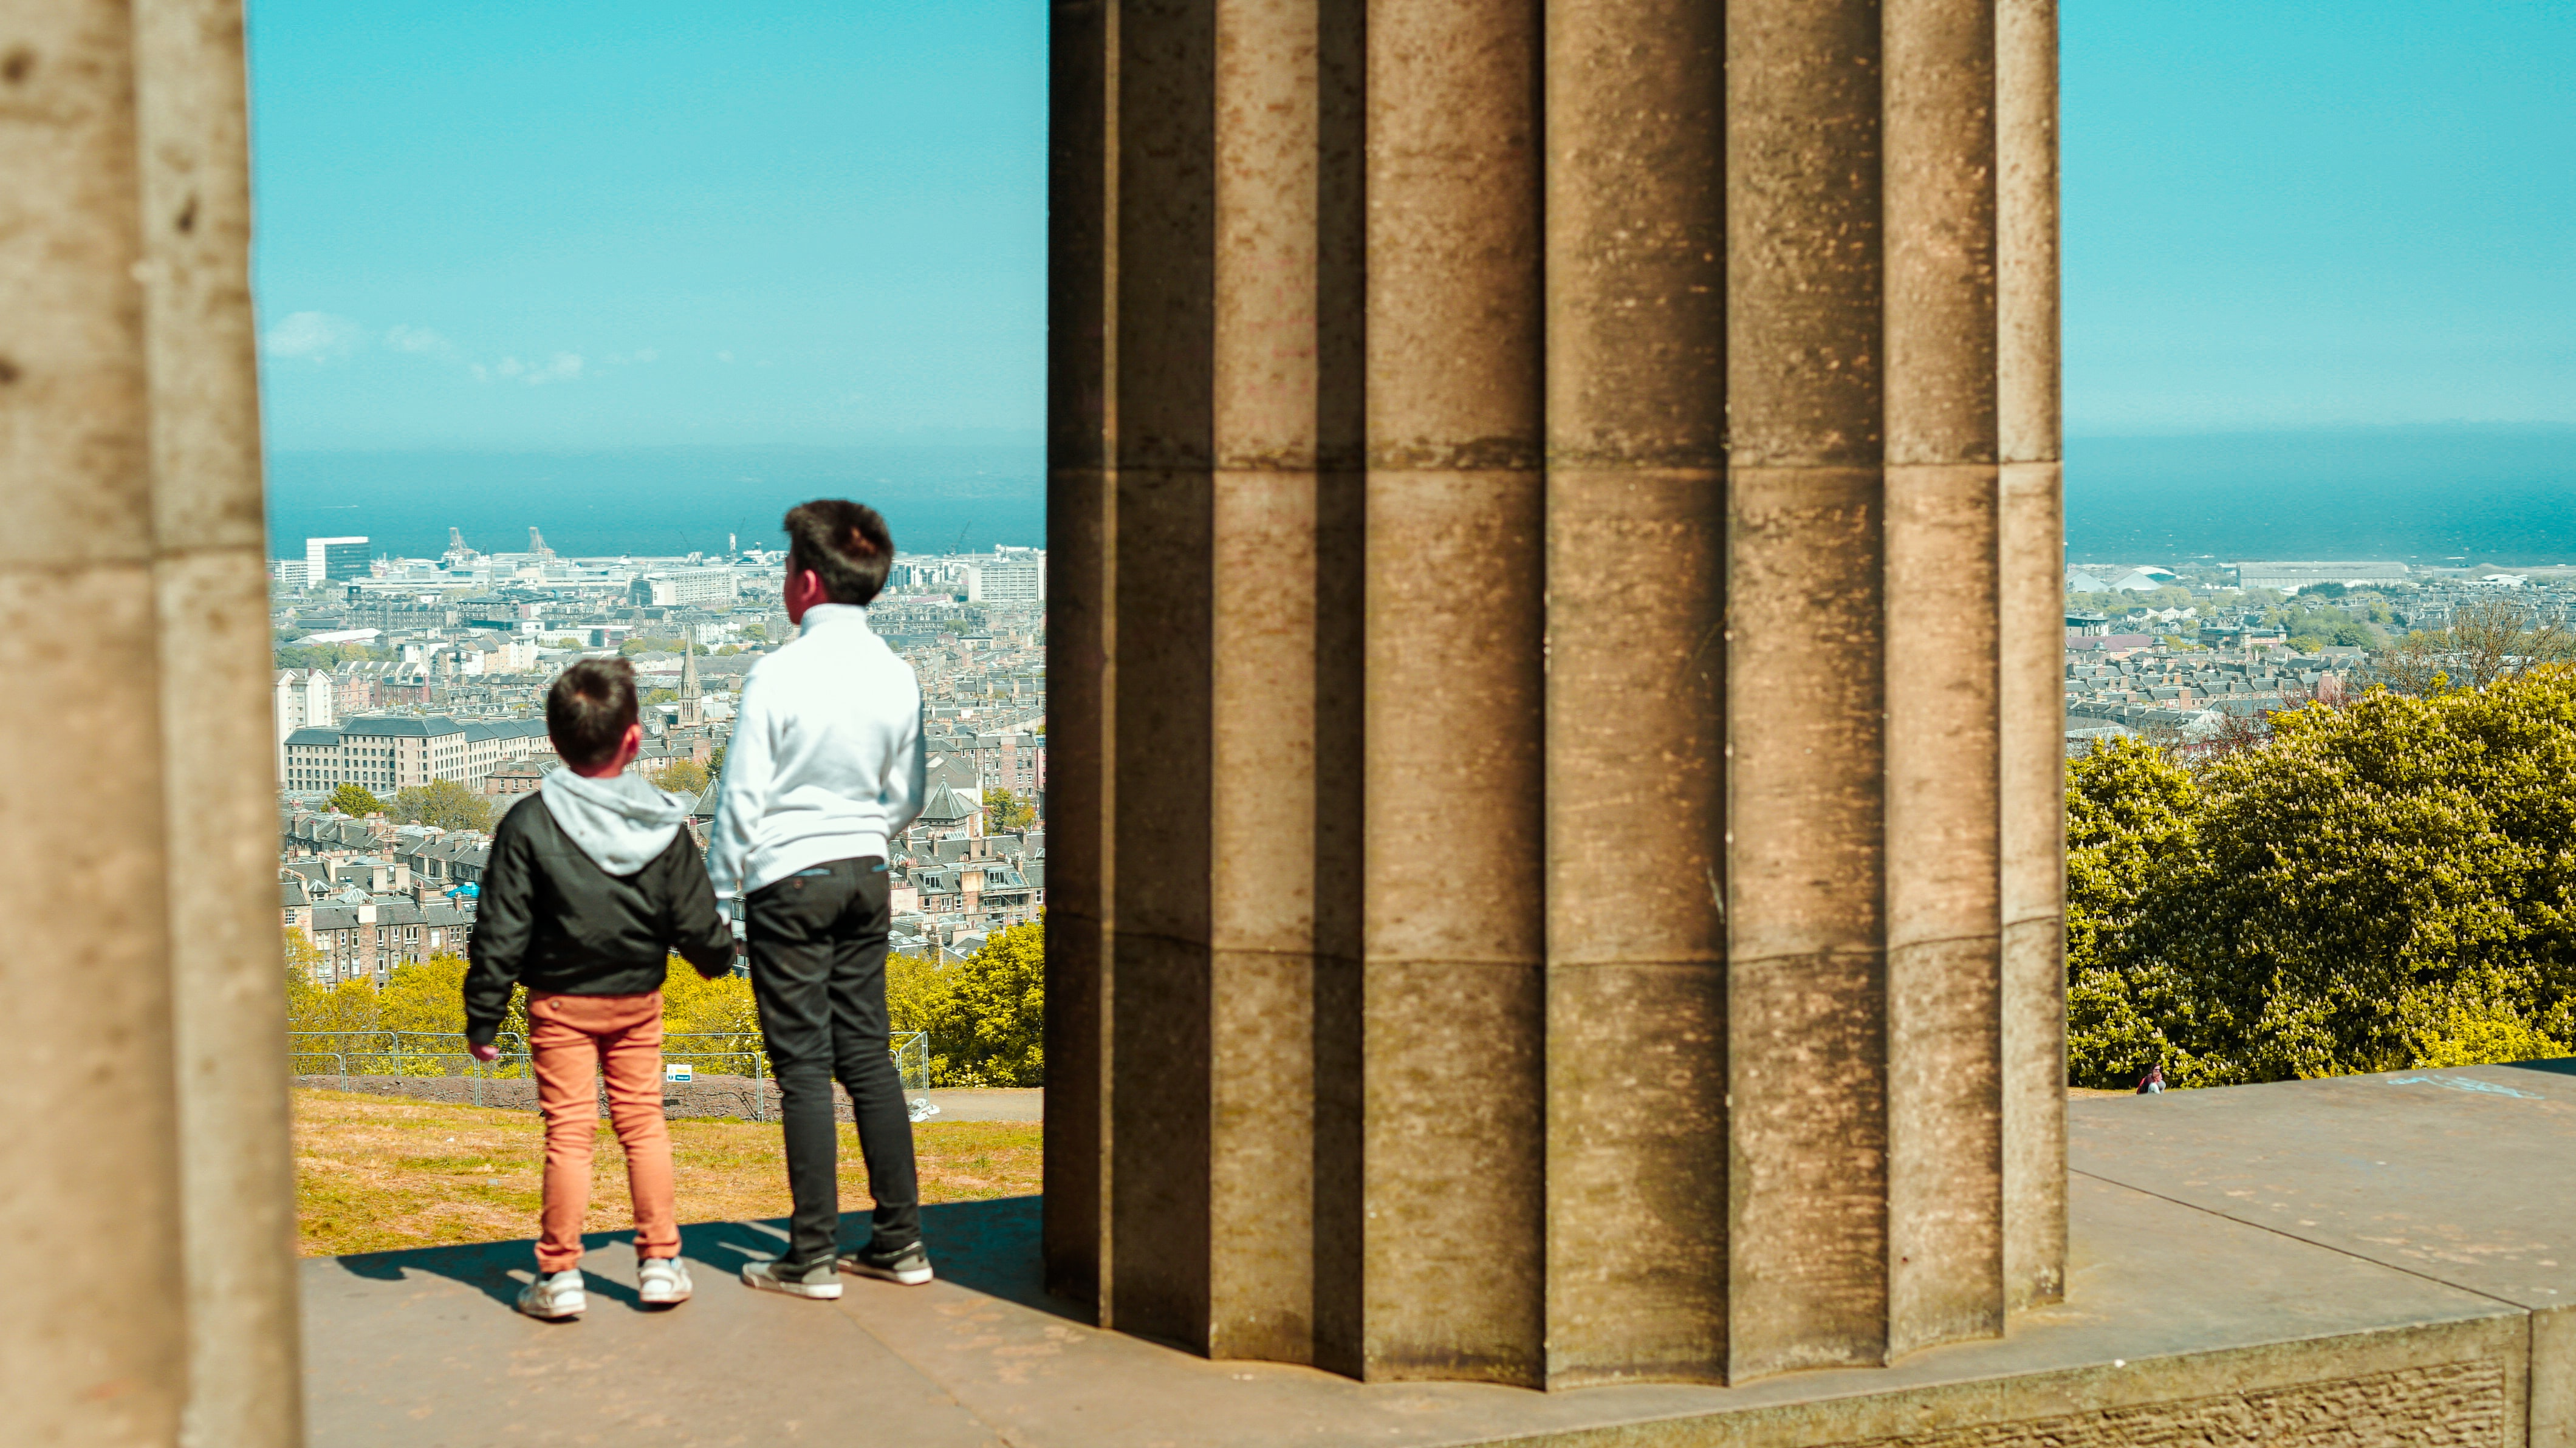 Two children stand with their backs facing the camera on the National Monument of Scotland with views of Edinburgh in front of them